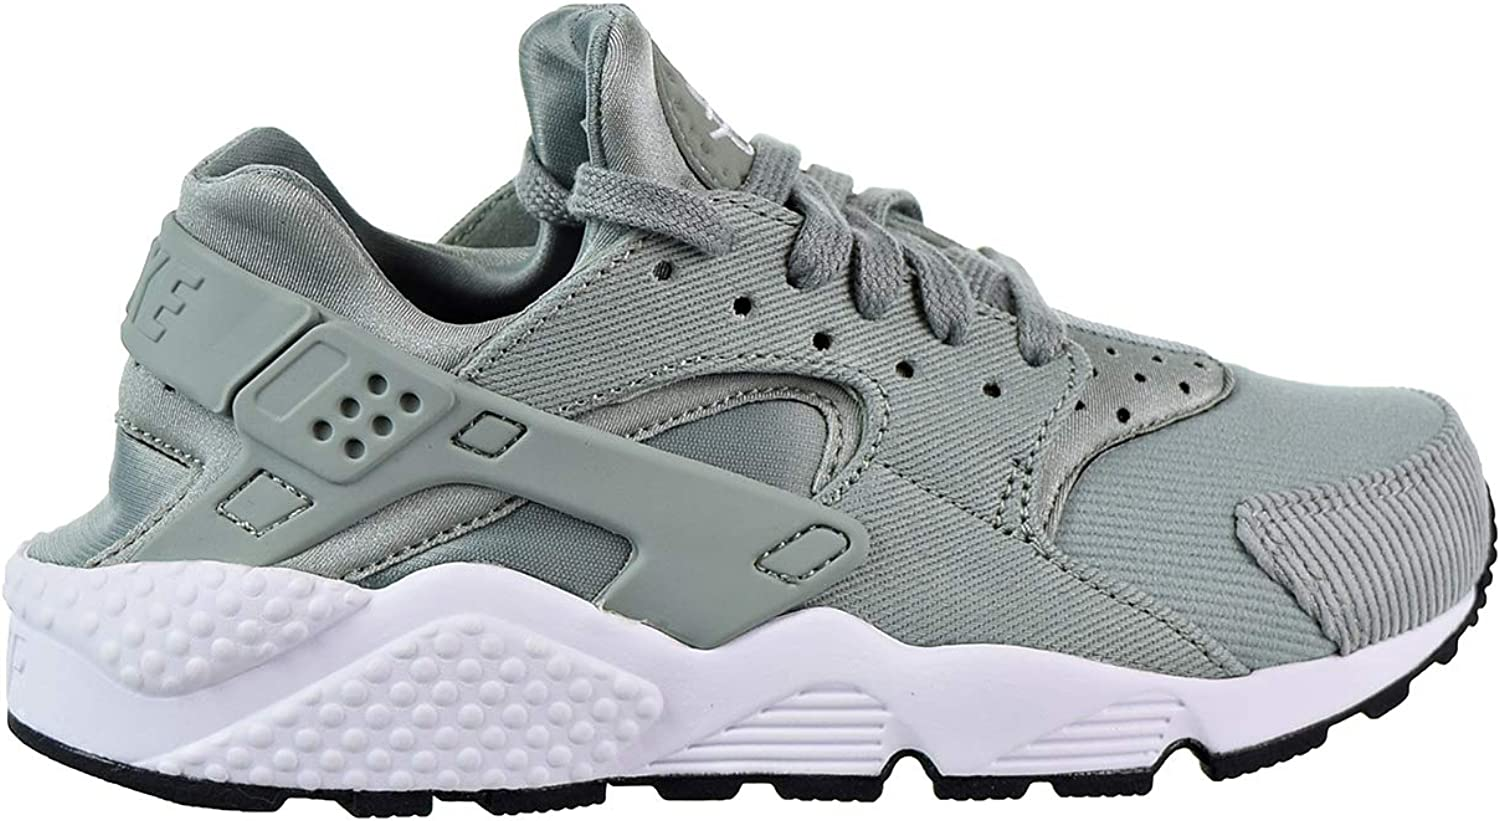 Nike W Air Huarache Run Se, Zapatillas de Running para Mujer, Multicolor (Mica Green/Mica Green/Black/White 301), 36.5 EU: Amazon.es: Zapatos y complementos